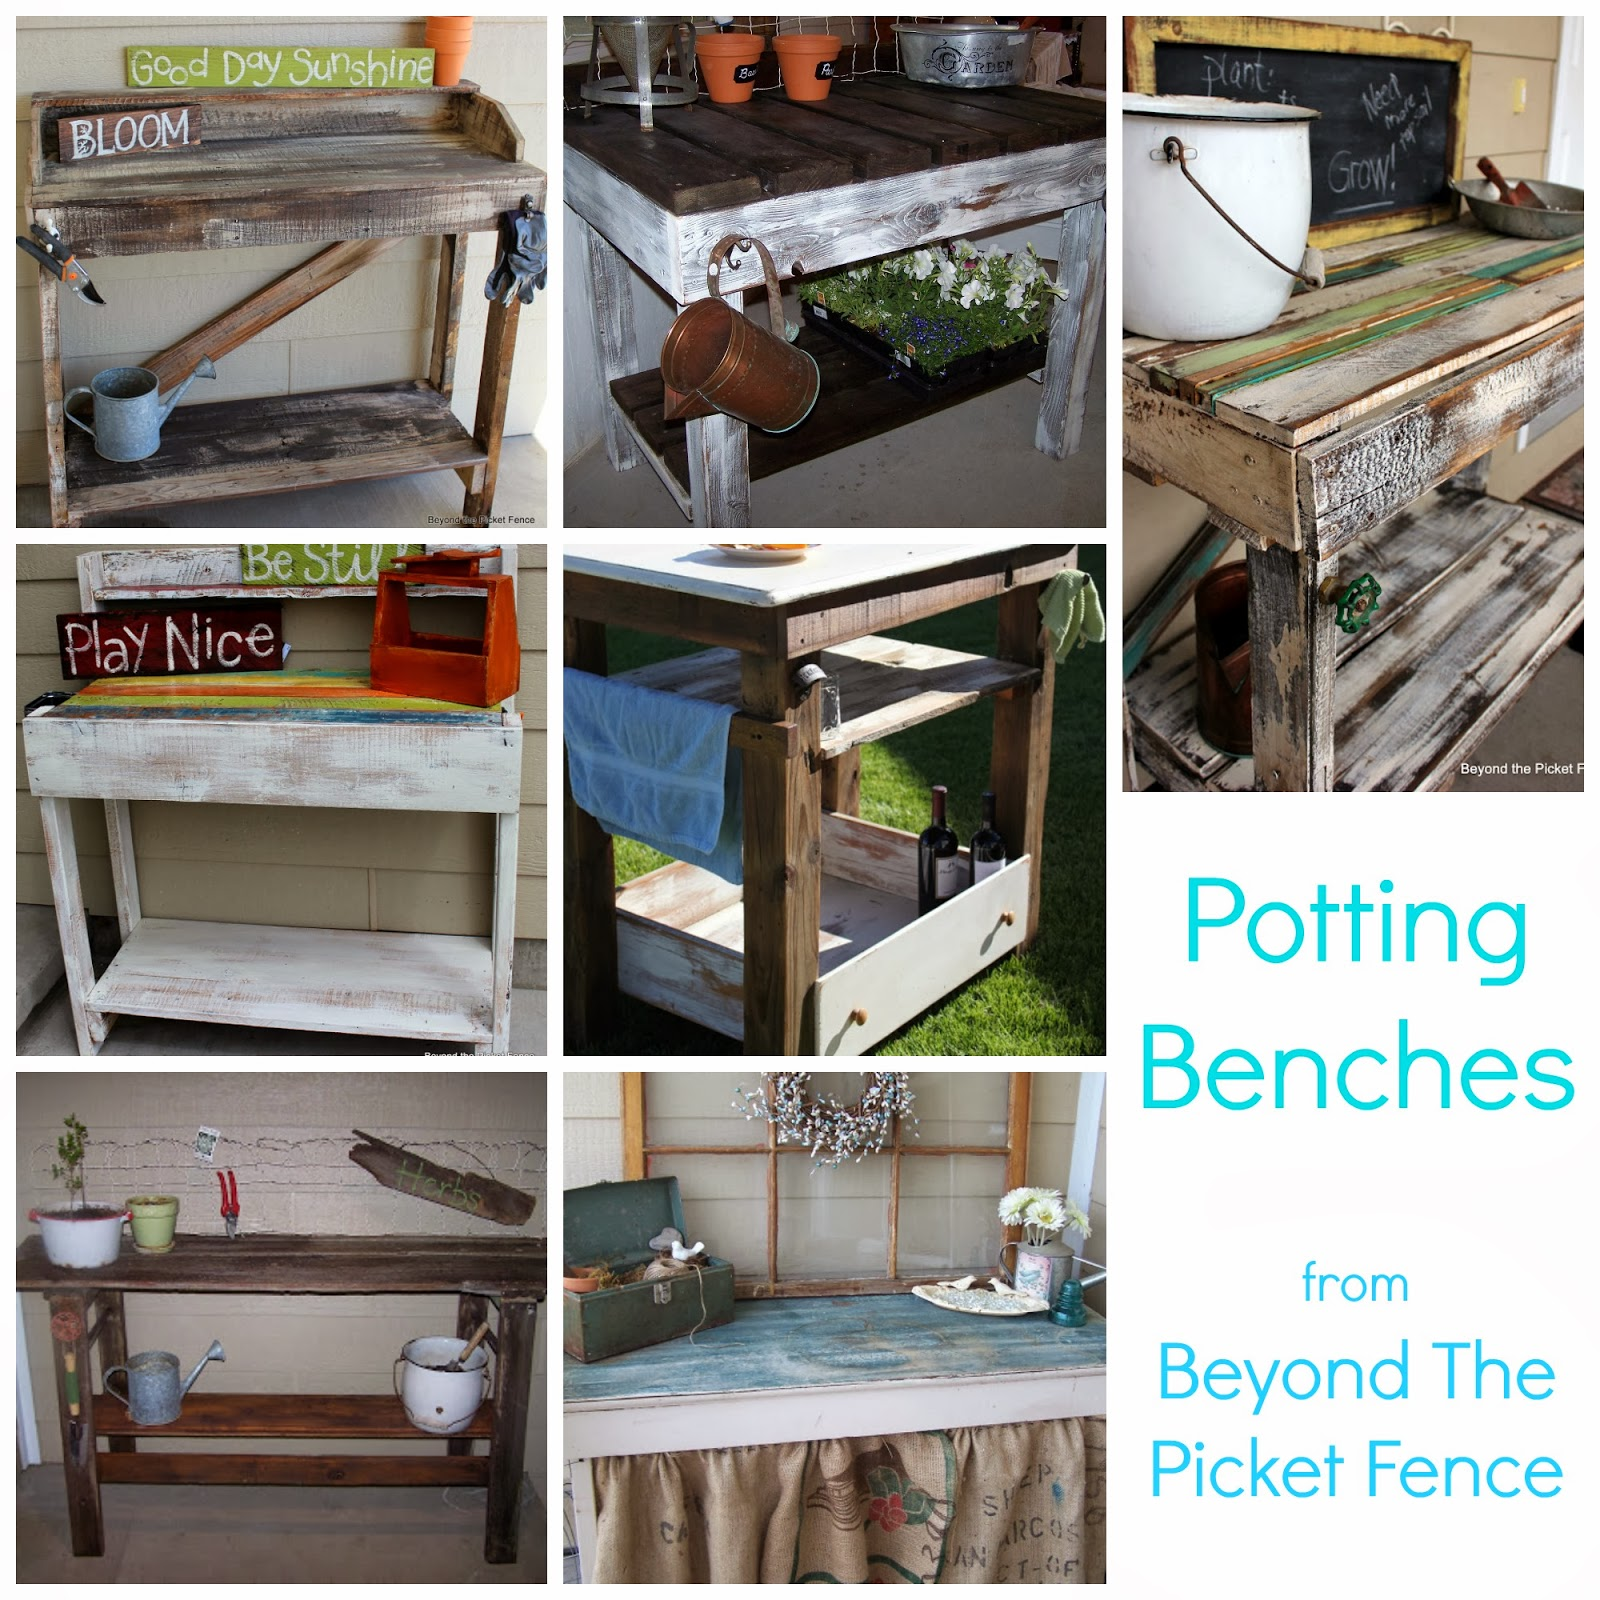 potting benches at beyond the picketfence made from salvaged materials and reclaimed wood http://bec4-beyondthepicketfence.blogspot.com/2014/02/potting-bench-fever.html